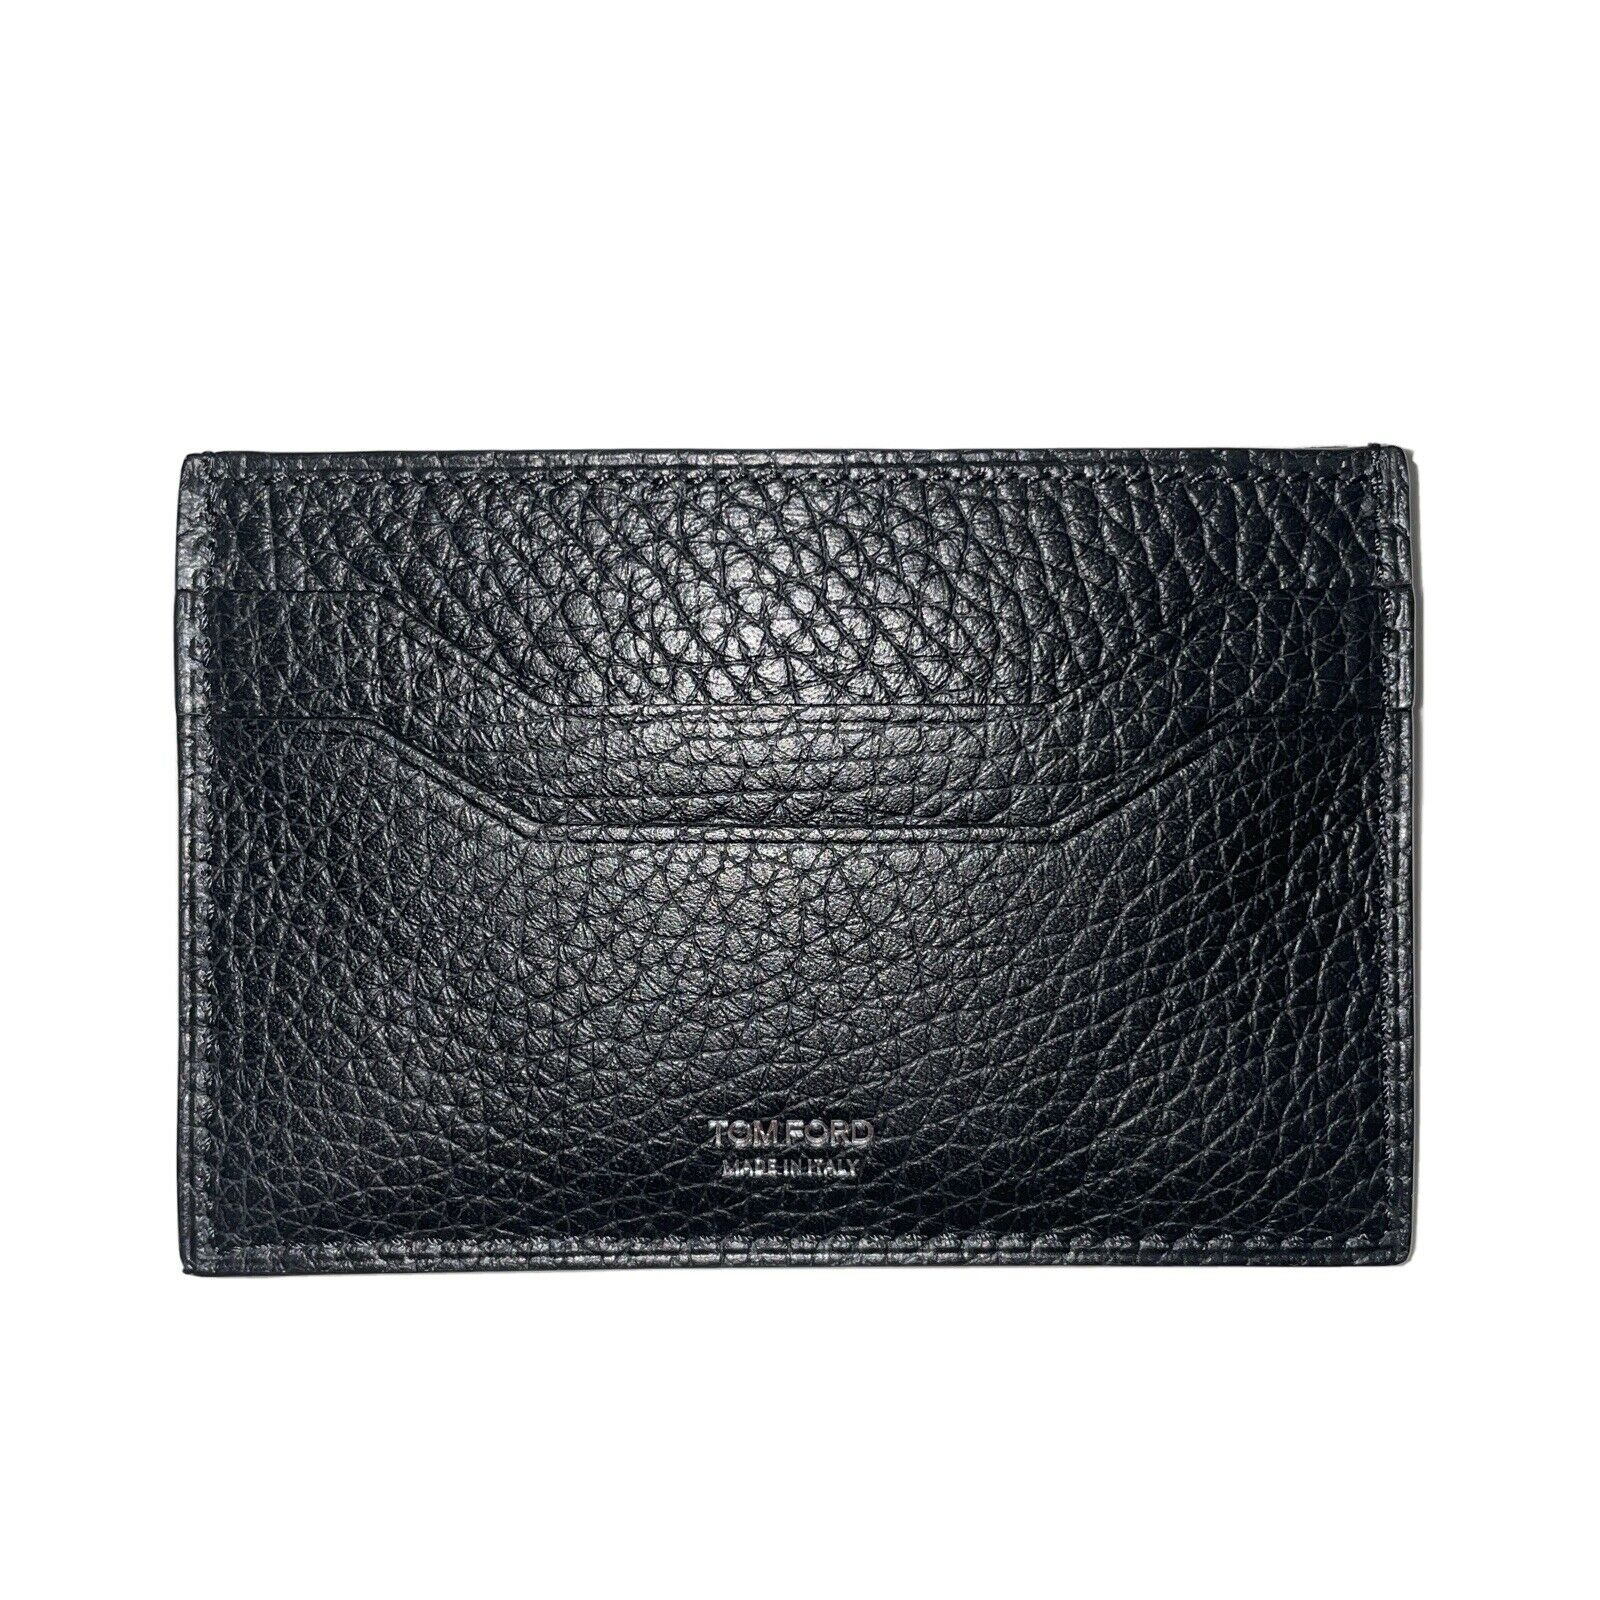 NWT TOM FORD Card Case Wallet Holder Black 11 x 7 cm 100% Calf Leather